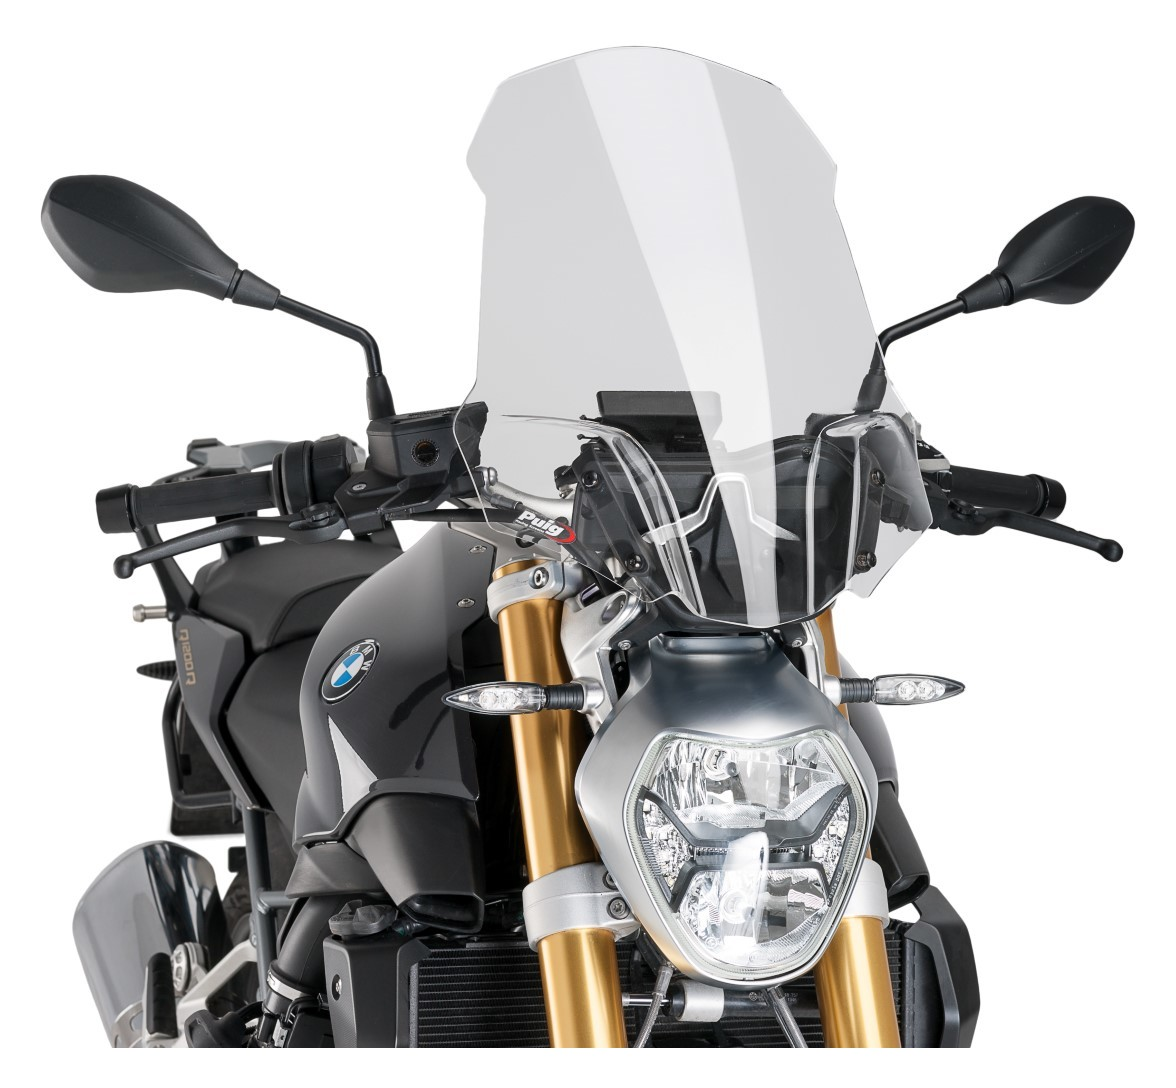 Puig Touring Naked New Generation Windscreen BMW R1200R